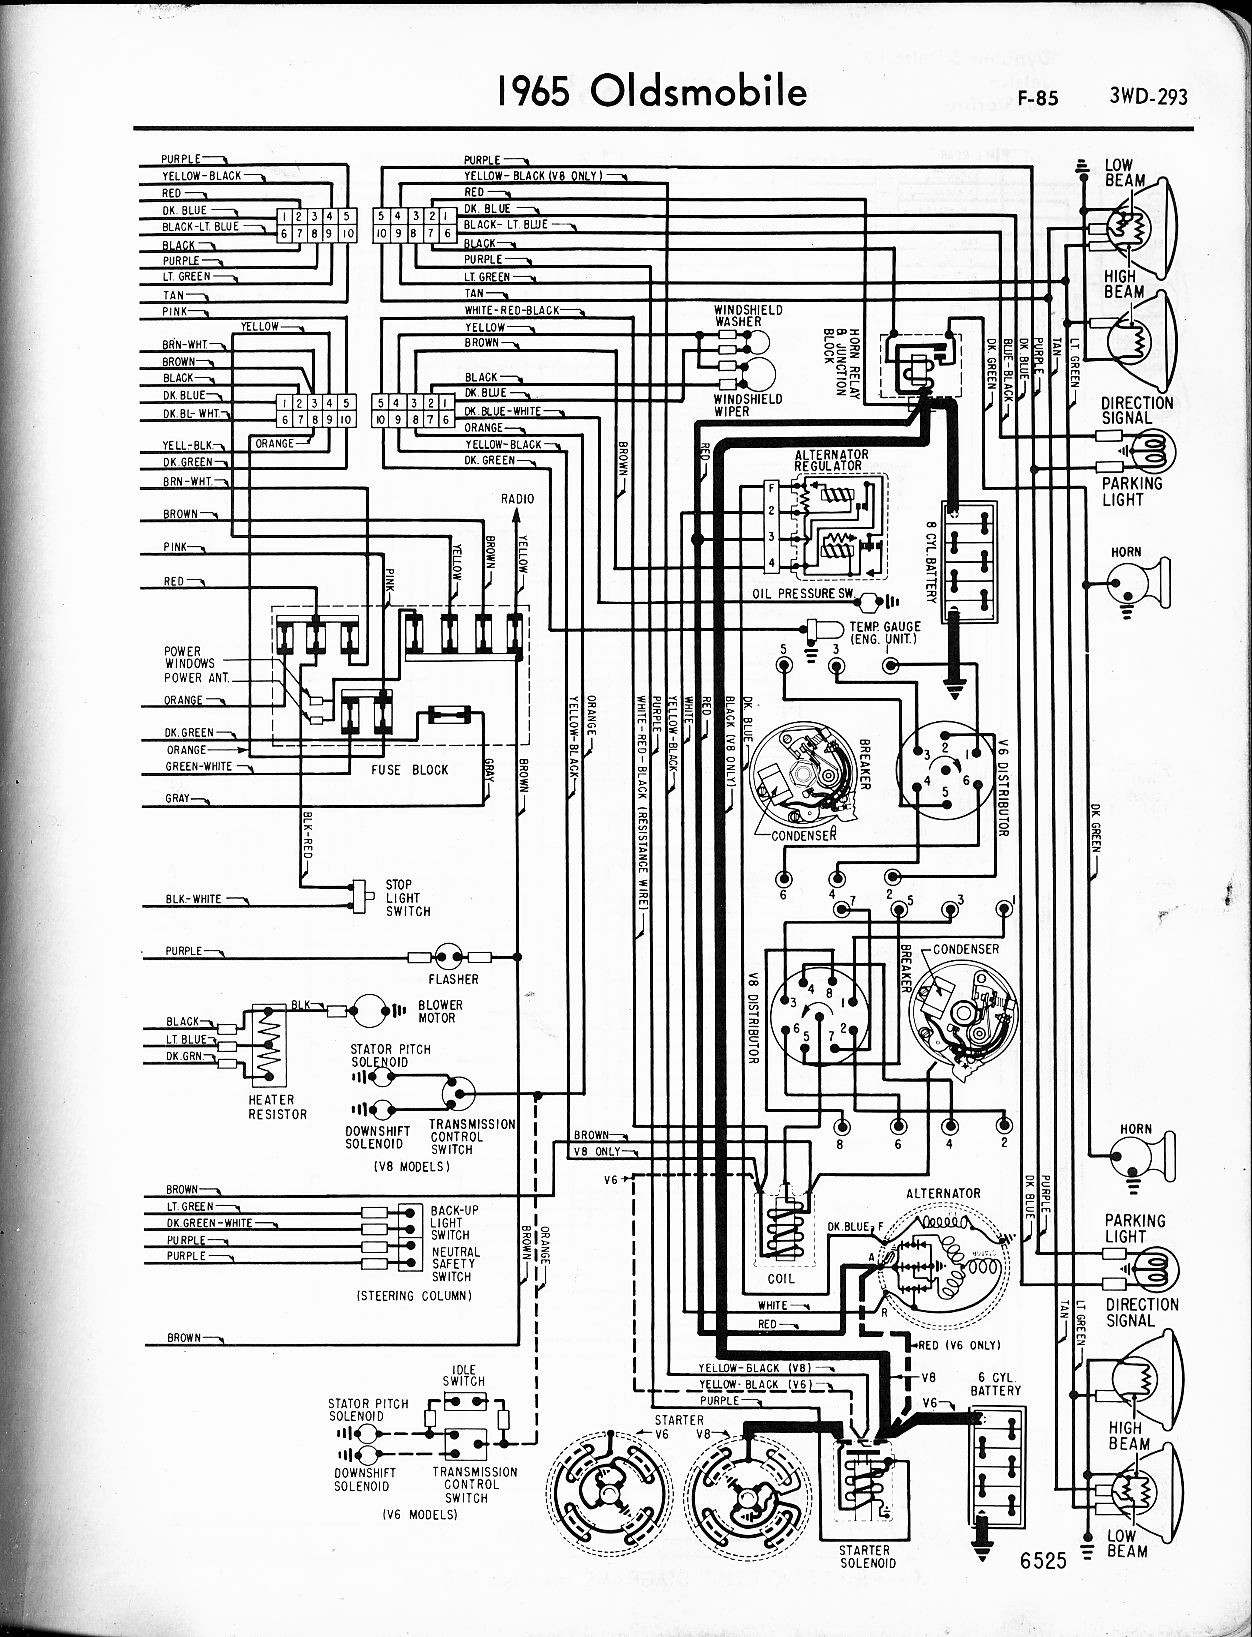 68 Firebird Wiring Harness Diagram | Wiring Liry on 65 ford wiring diagram, 65 olds parts, 65 pontiac wiring diagram, 65 chevy wiring diagram,